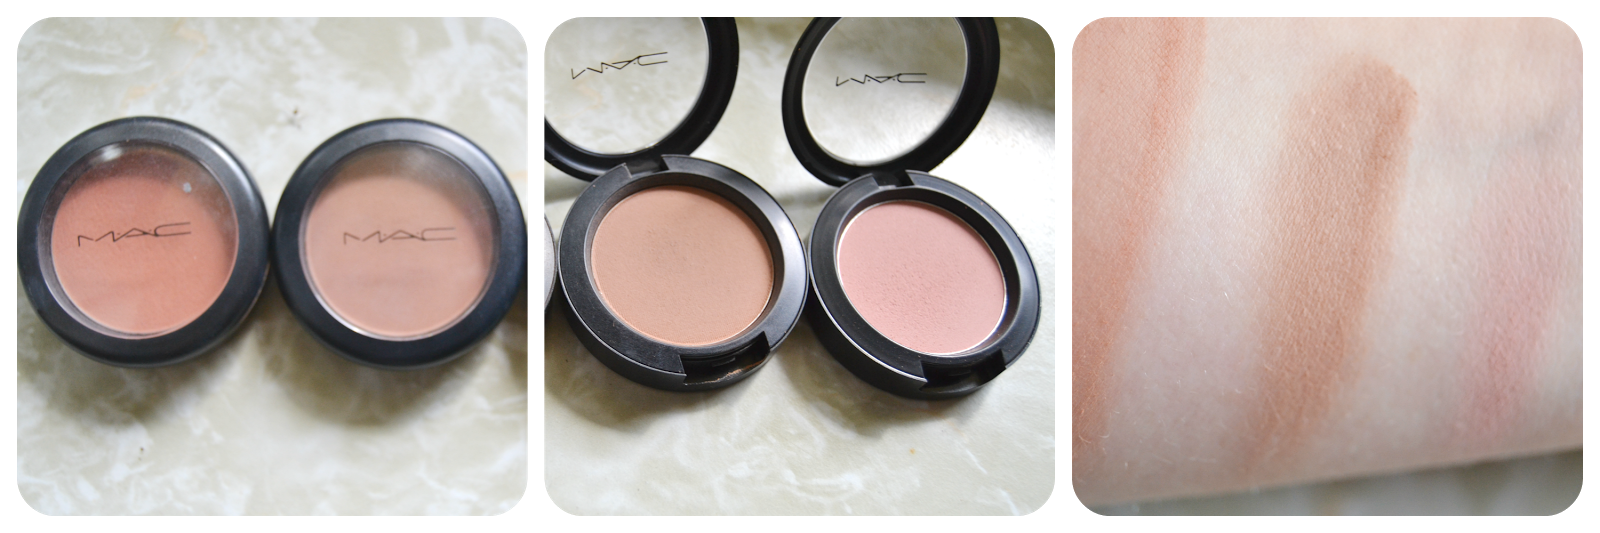 mac powder blush swatch gingerly harmony breath of plum